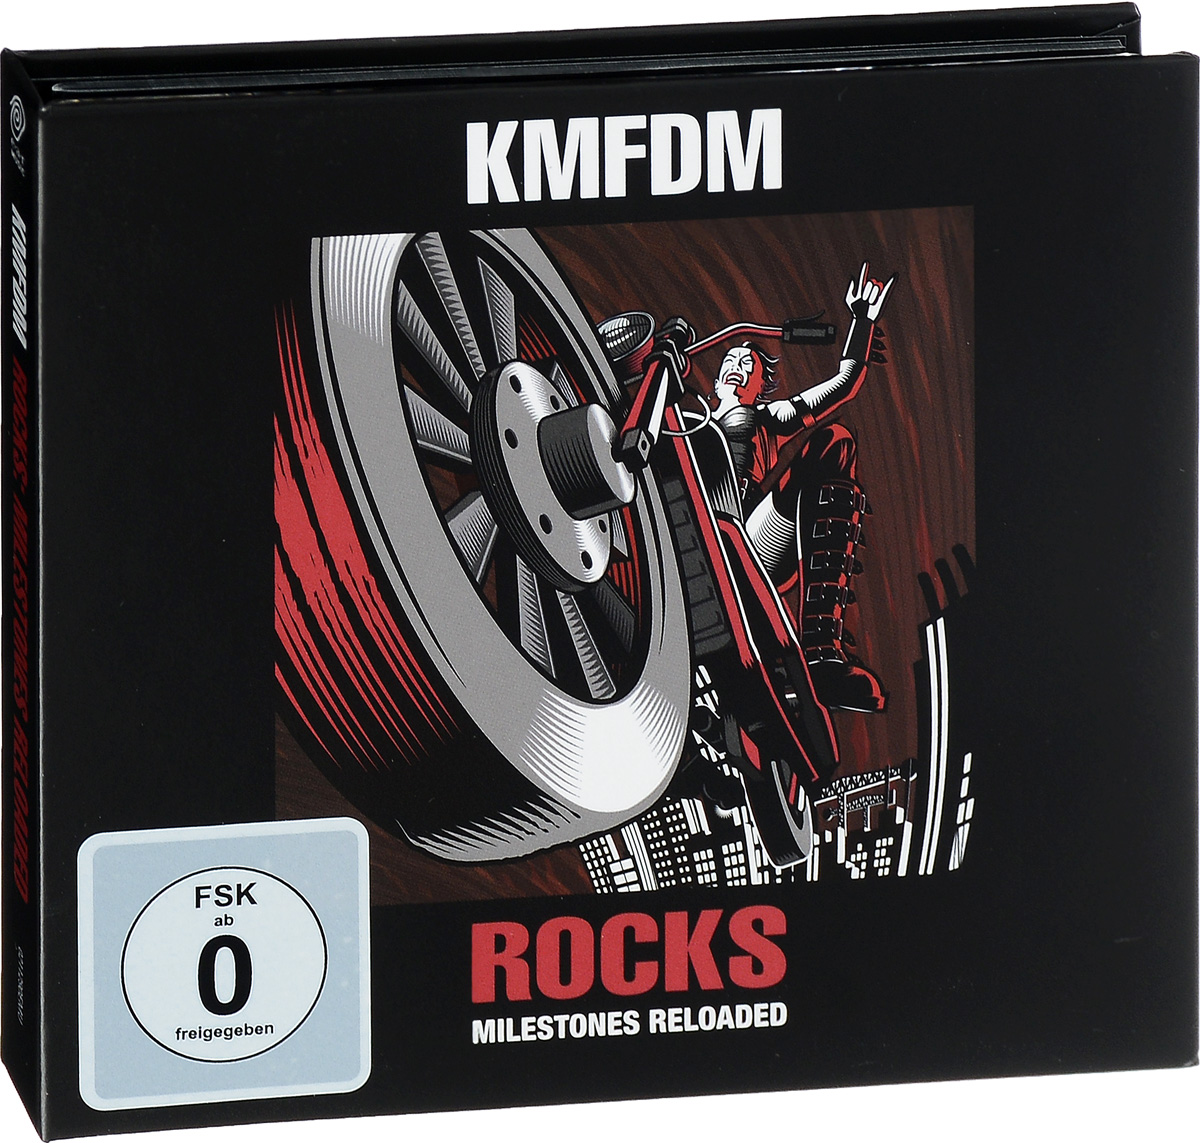 KMFDM KMFDM. Rocks. Milestones Reloaded (CD + DVD) hammerfall rebels with a cause unruly unrestrained uninhibited dvd cd